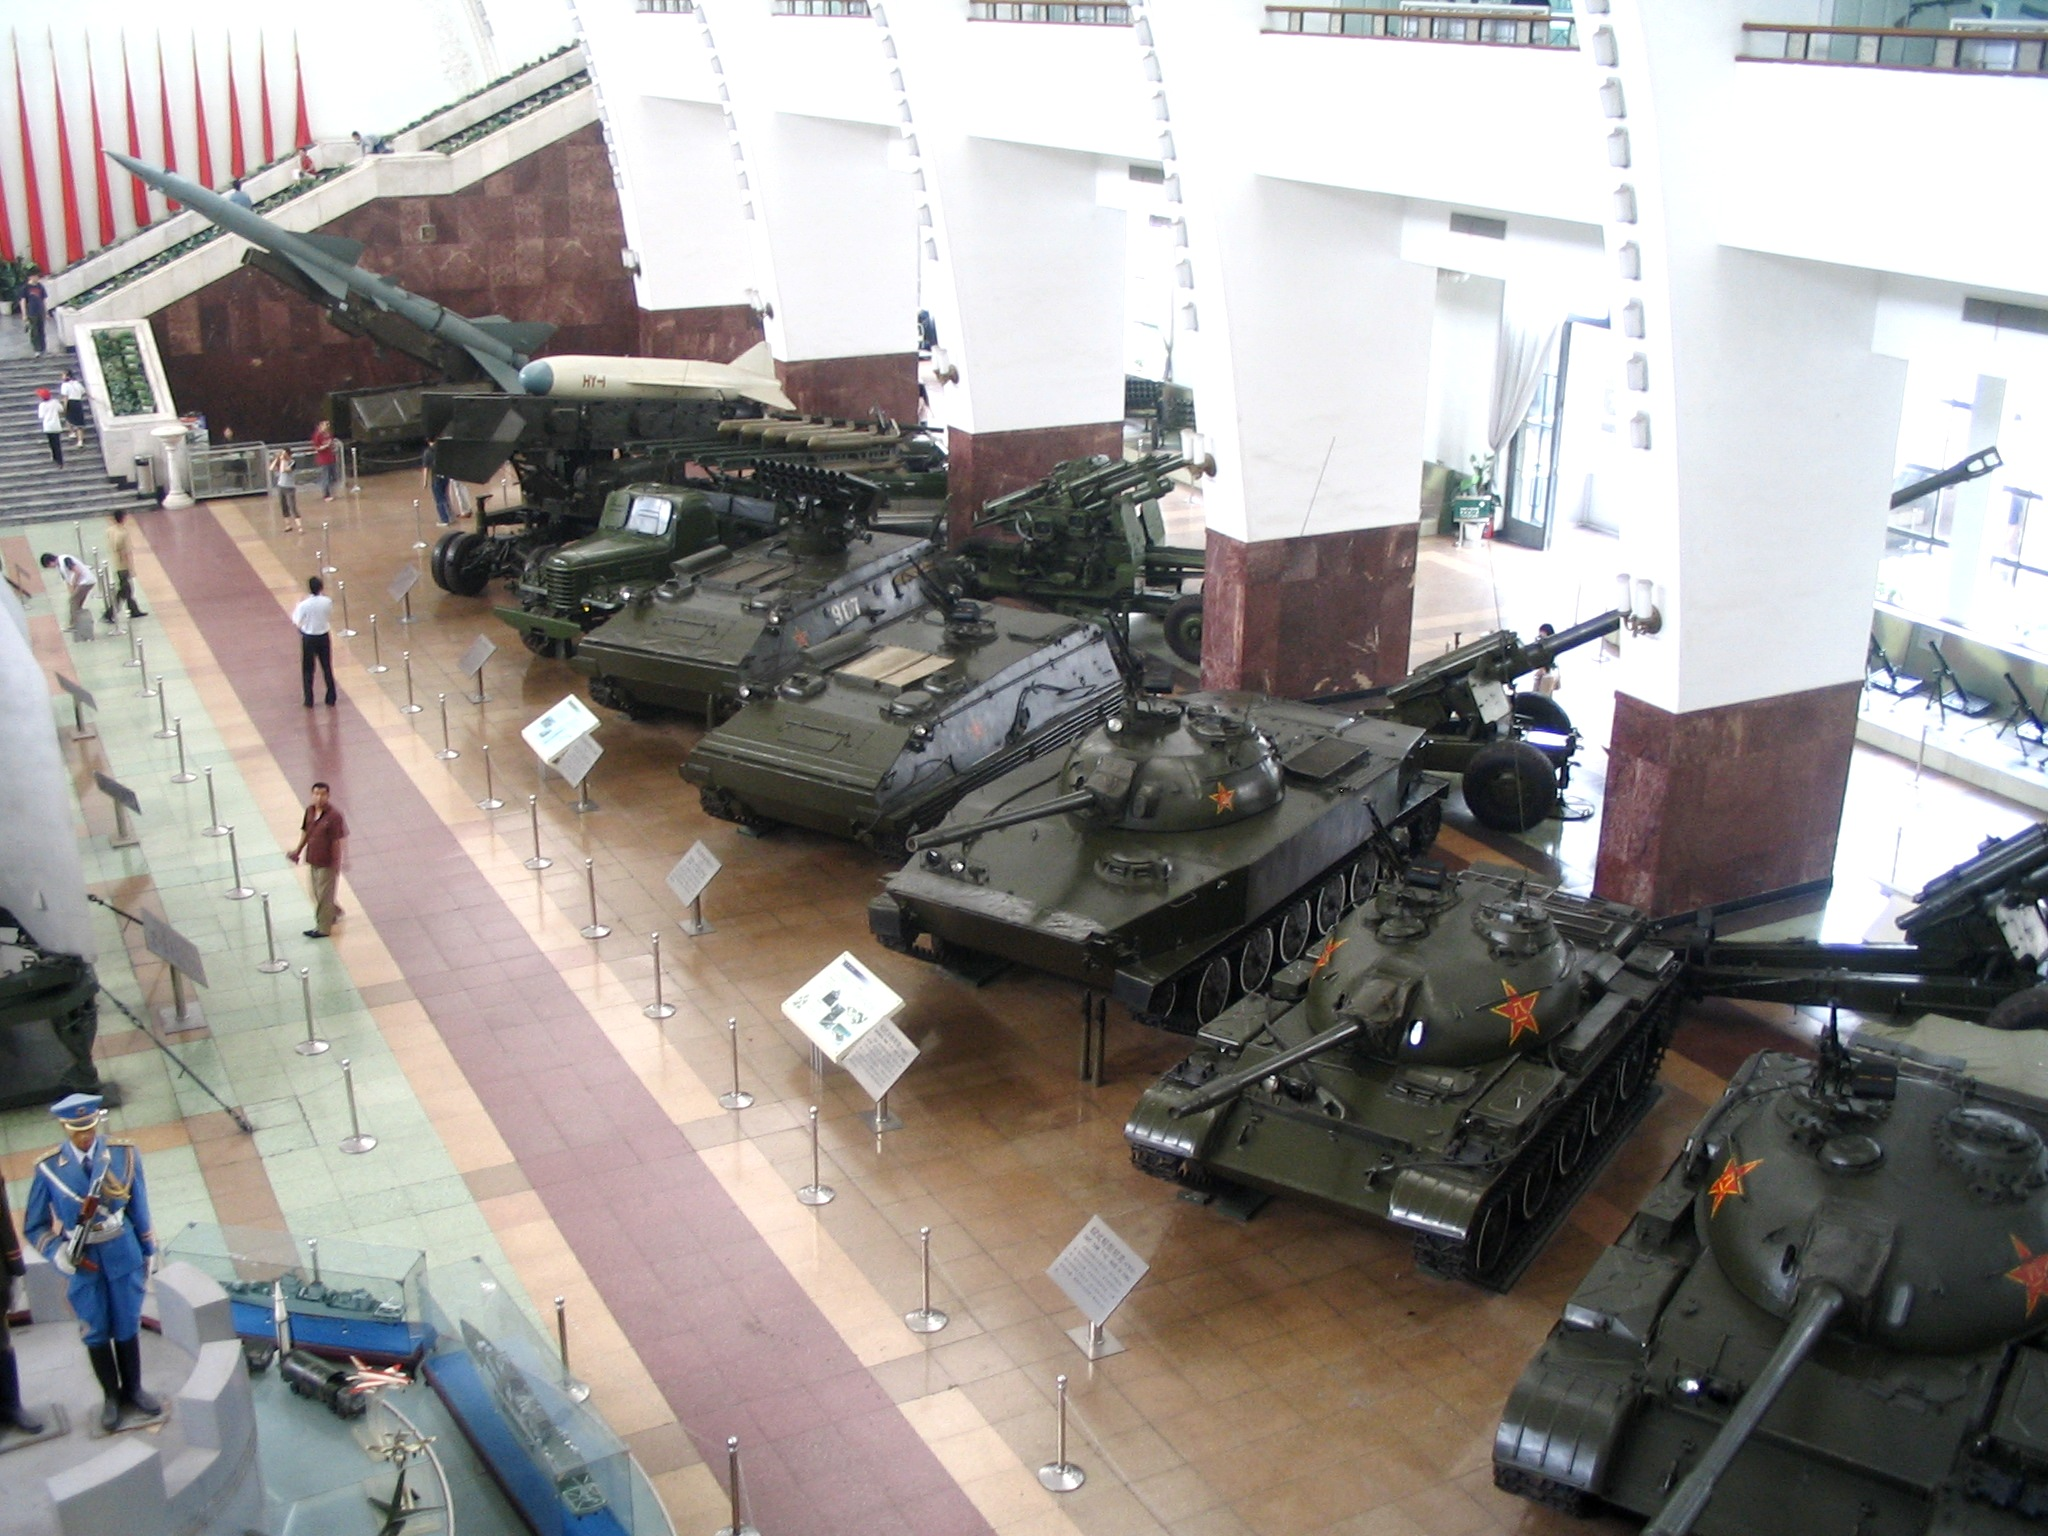 File:Beijing, China - Military Museum.jpg - Wikimedia Commons